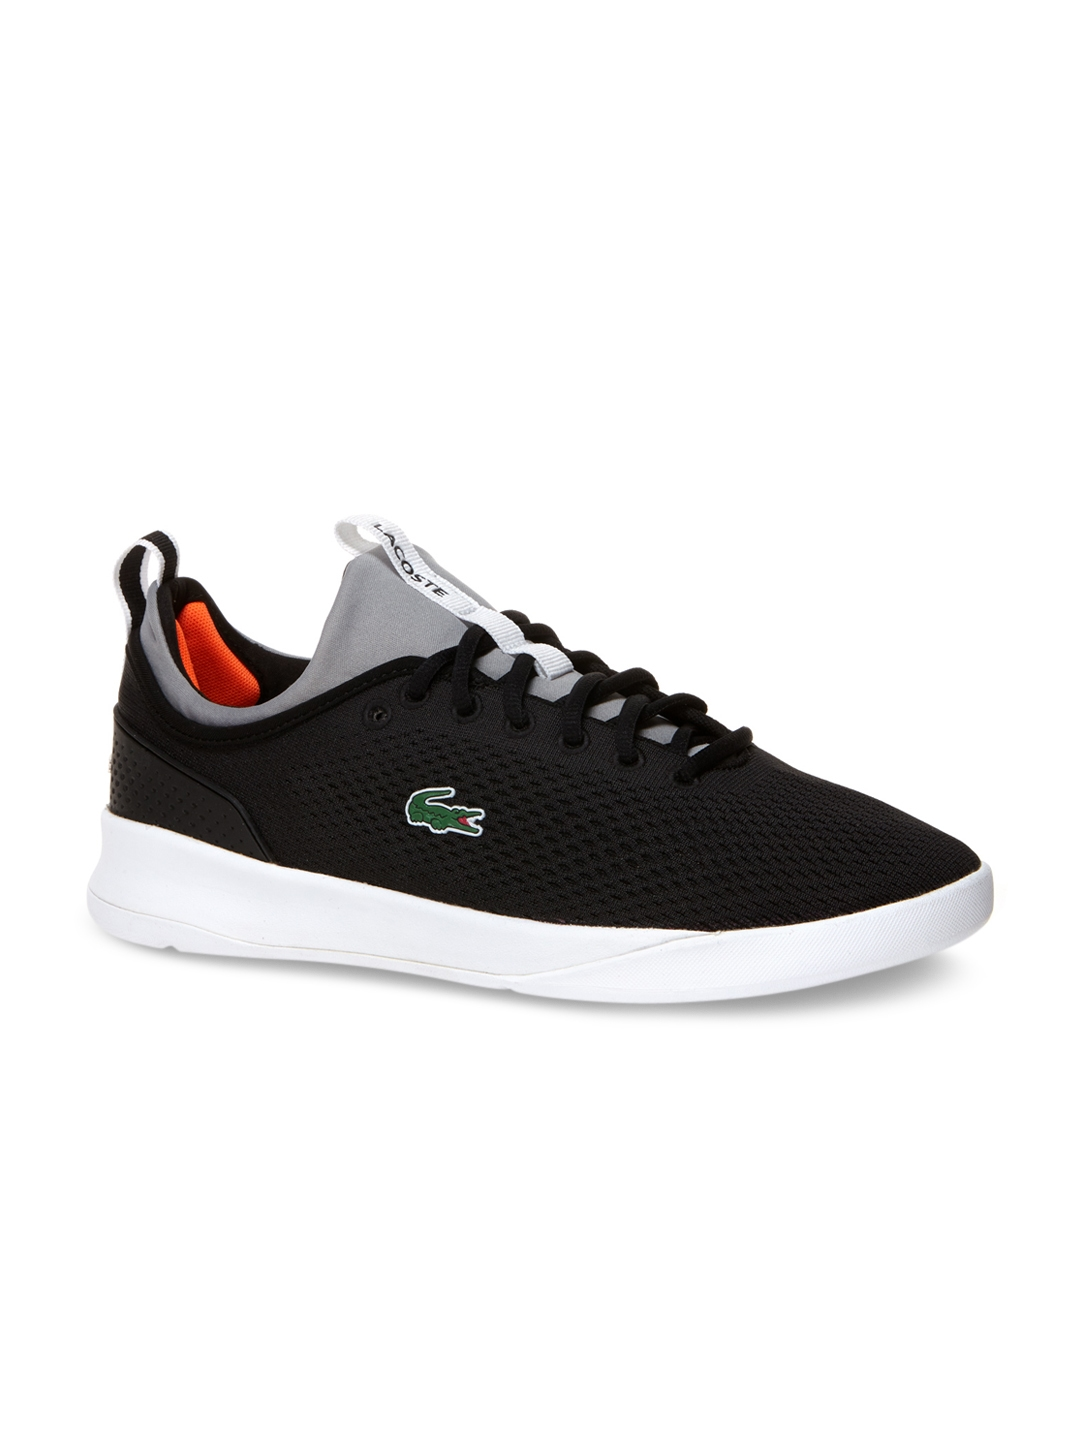 320a7d1622b4 Buy Lacoste Men Black Training Or Gym Shoes - Sports Shoes for Men ...